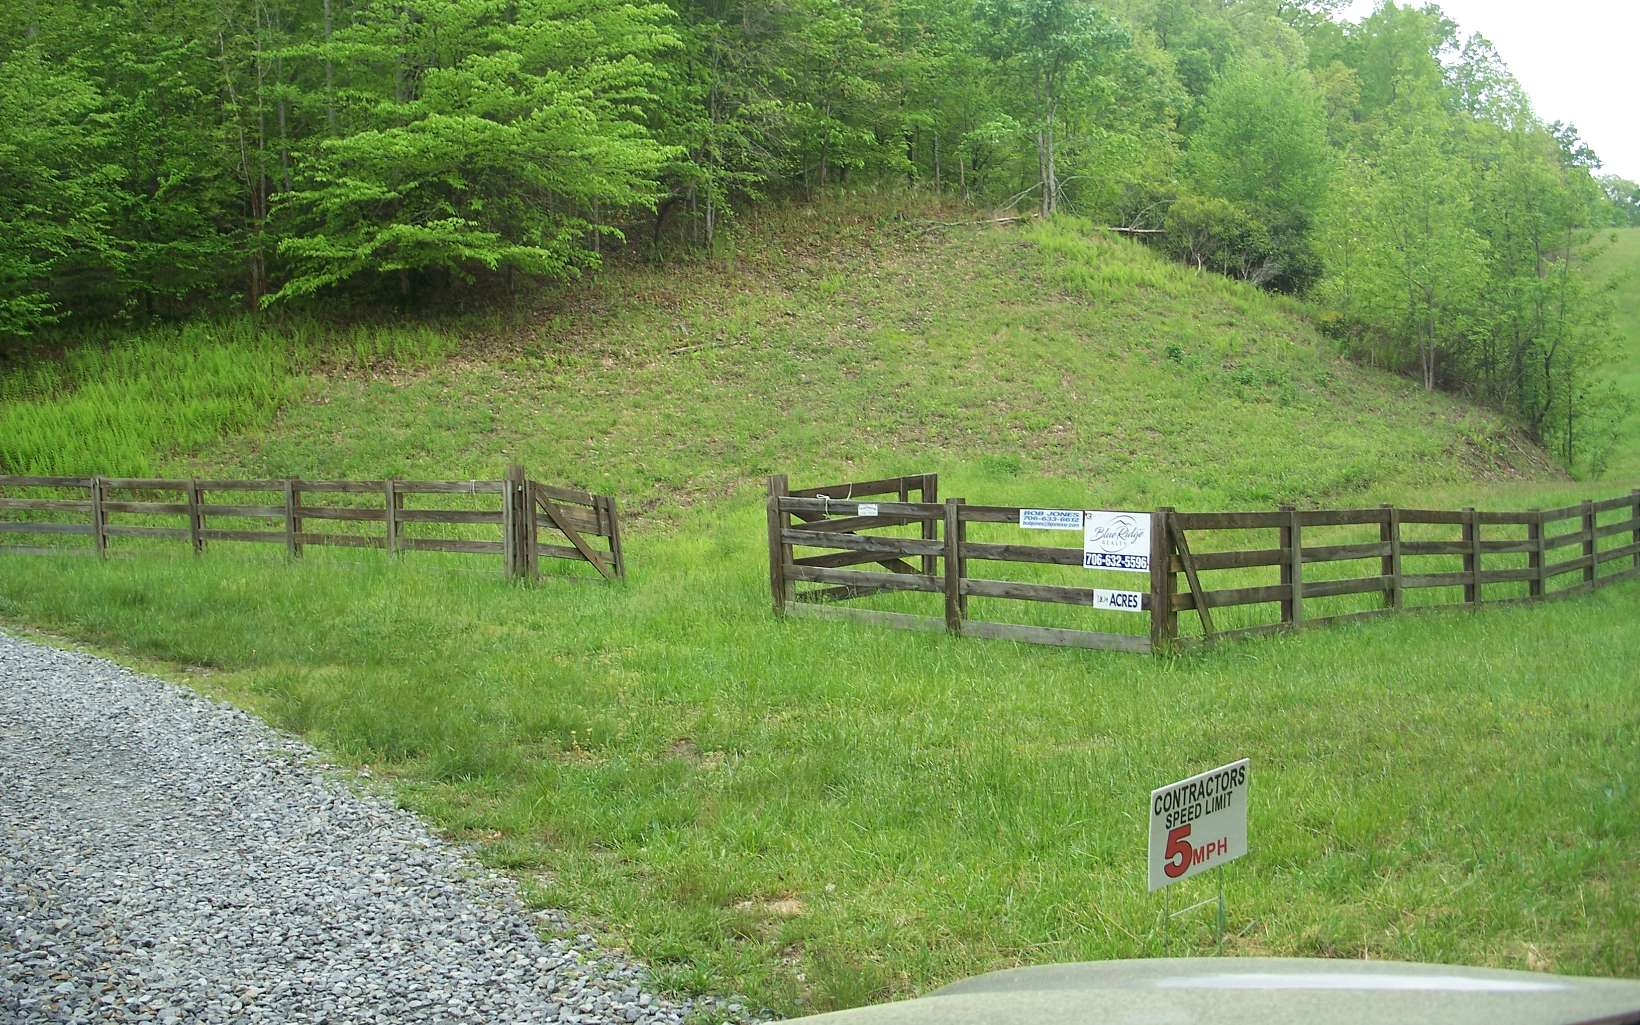 This 18.24 Acre tract has Mountain long range Views, Mature Timber, A Spring,,Fenced Pasture with Board Fence . Gated and Borders USFS and is within a 124 acre Ranch that is gated with common private Road that serves a total of 7 property owners, located 1/2 mile from hwy515 between Blue Ridge and Blairsville.